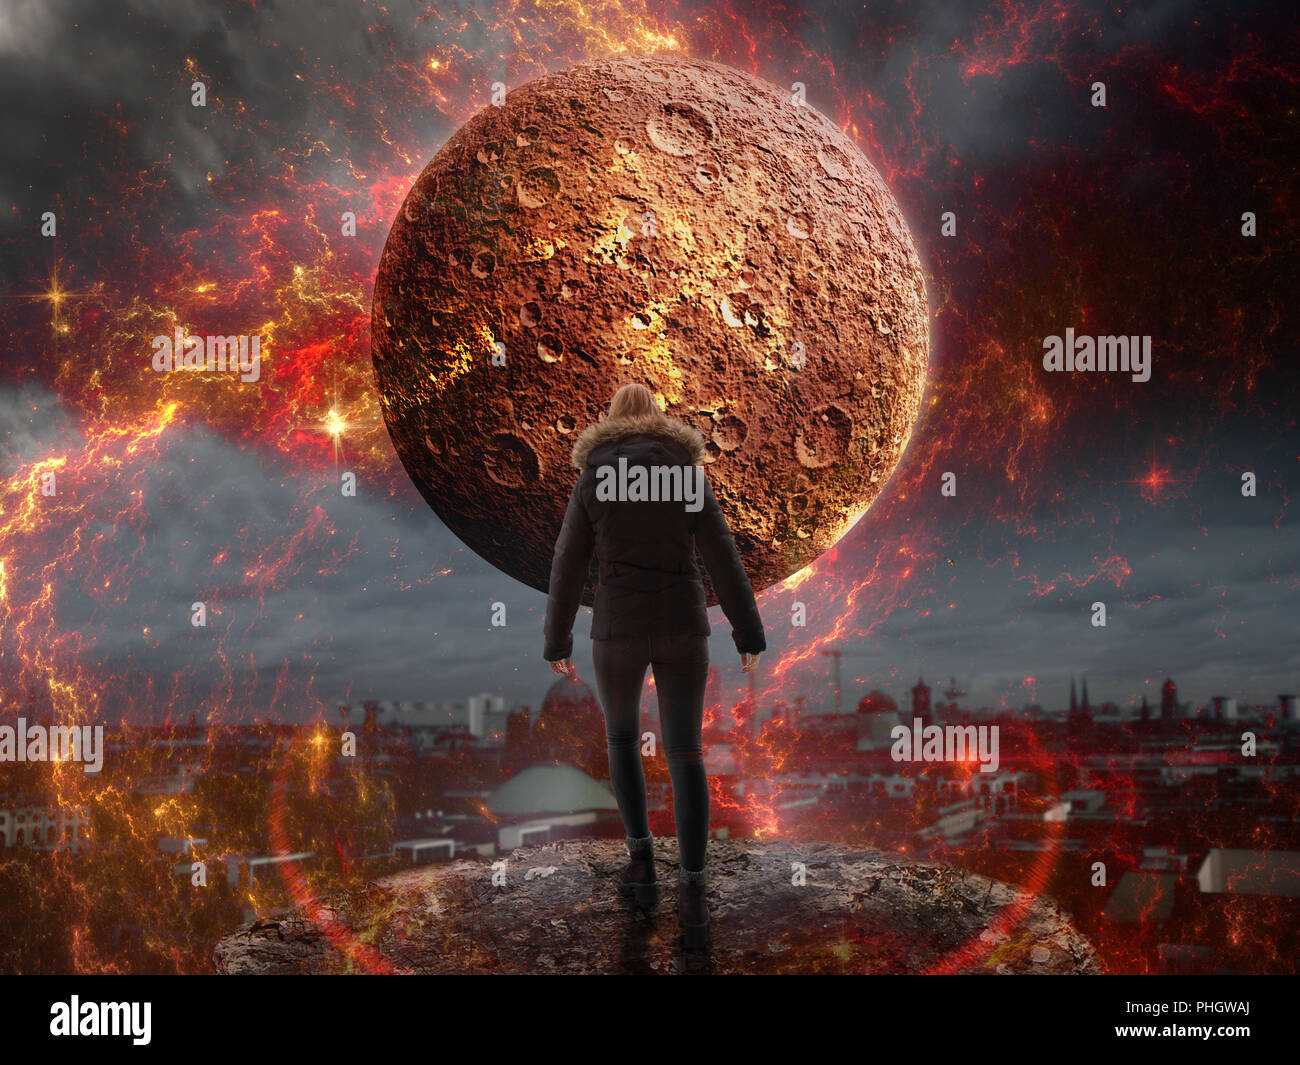 picture composing armageddon - Stock Image